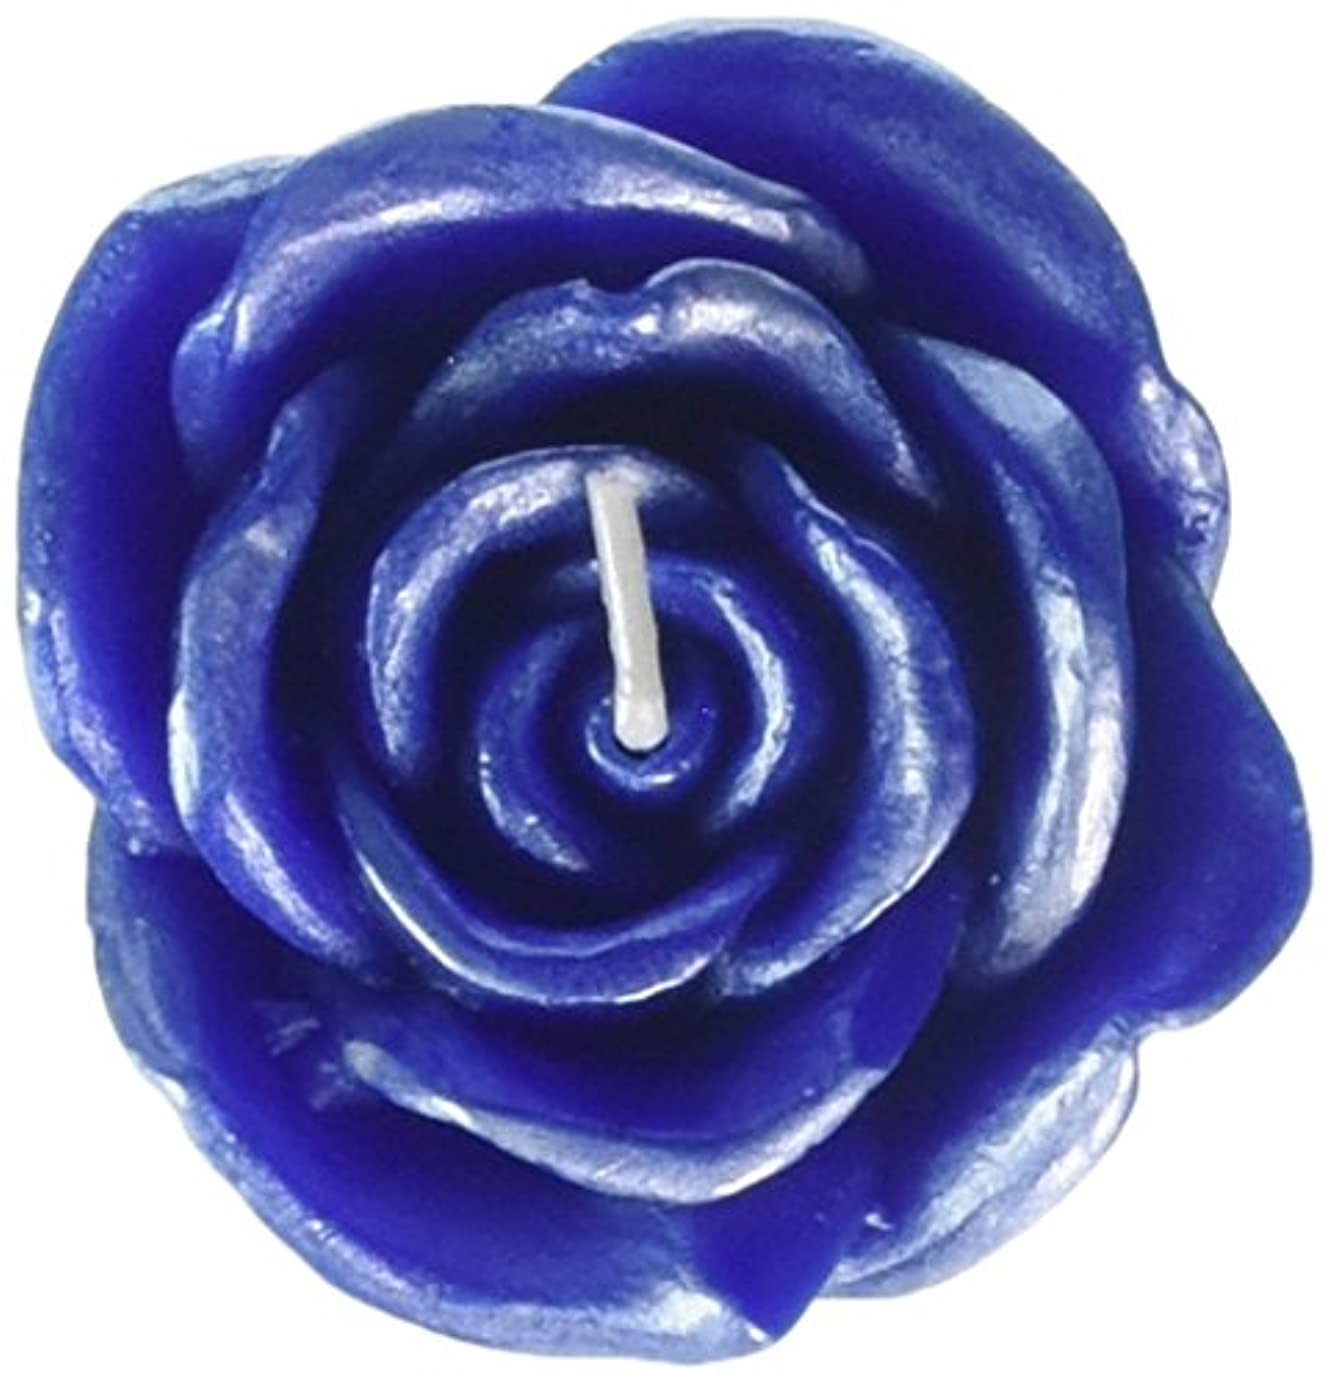 Zest Candle CFZ-075 3 in. Blue Rose Floating Candles -12pc-Box